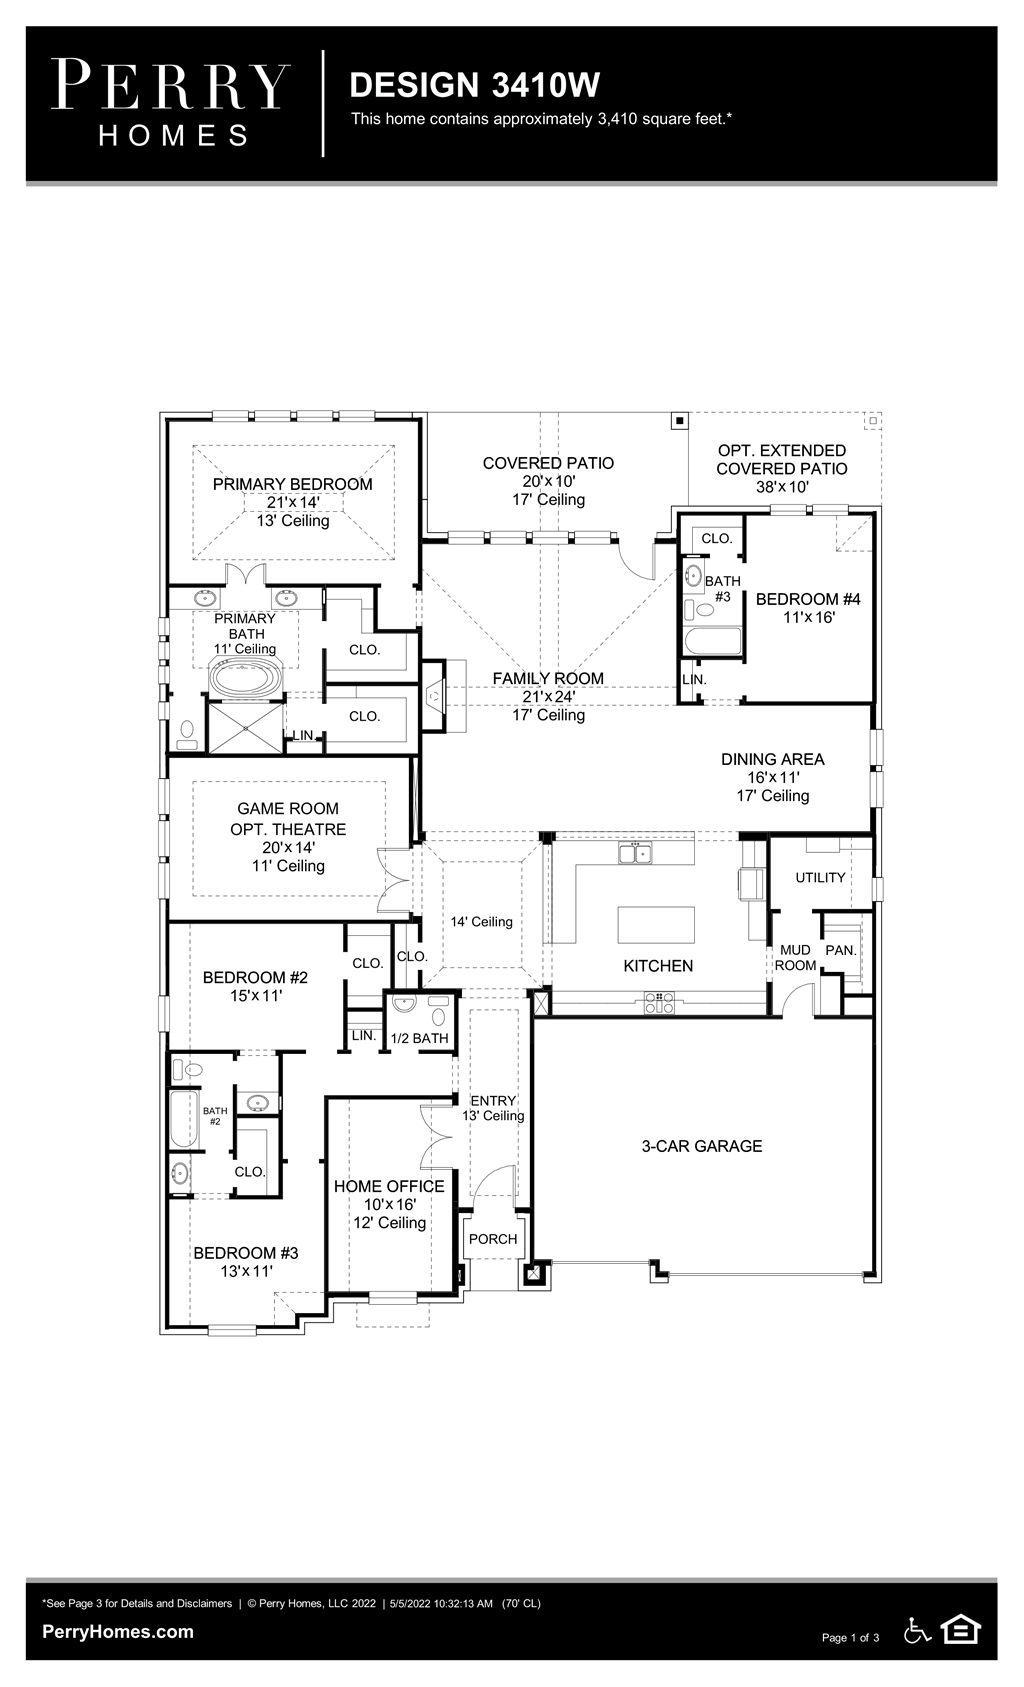 Floor Plan for 3410W